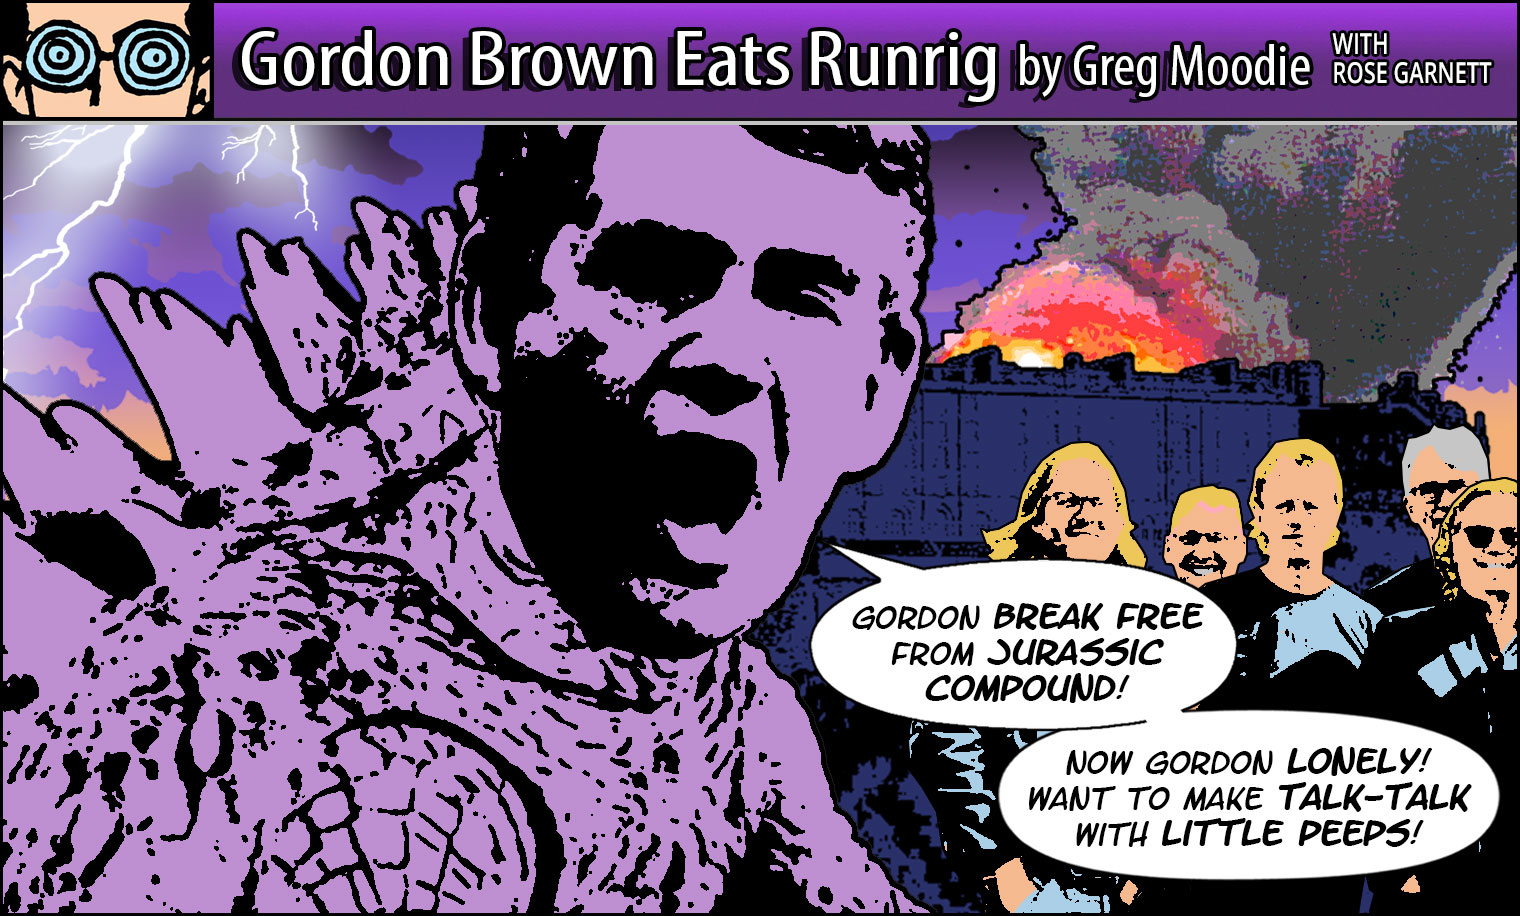 Gordon Brown Eats Runrig